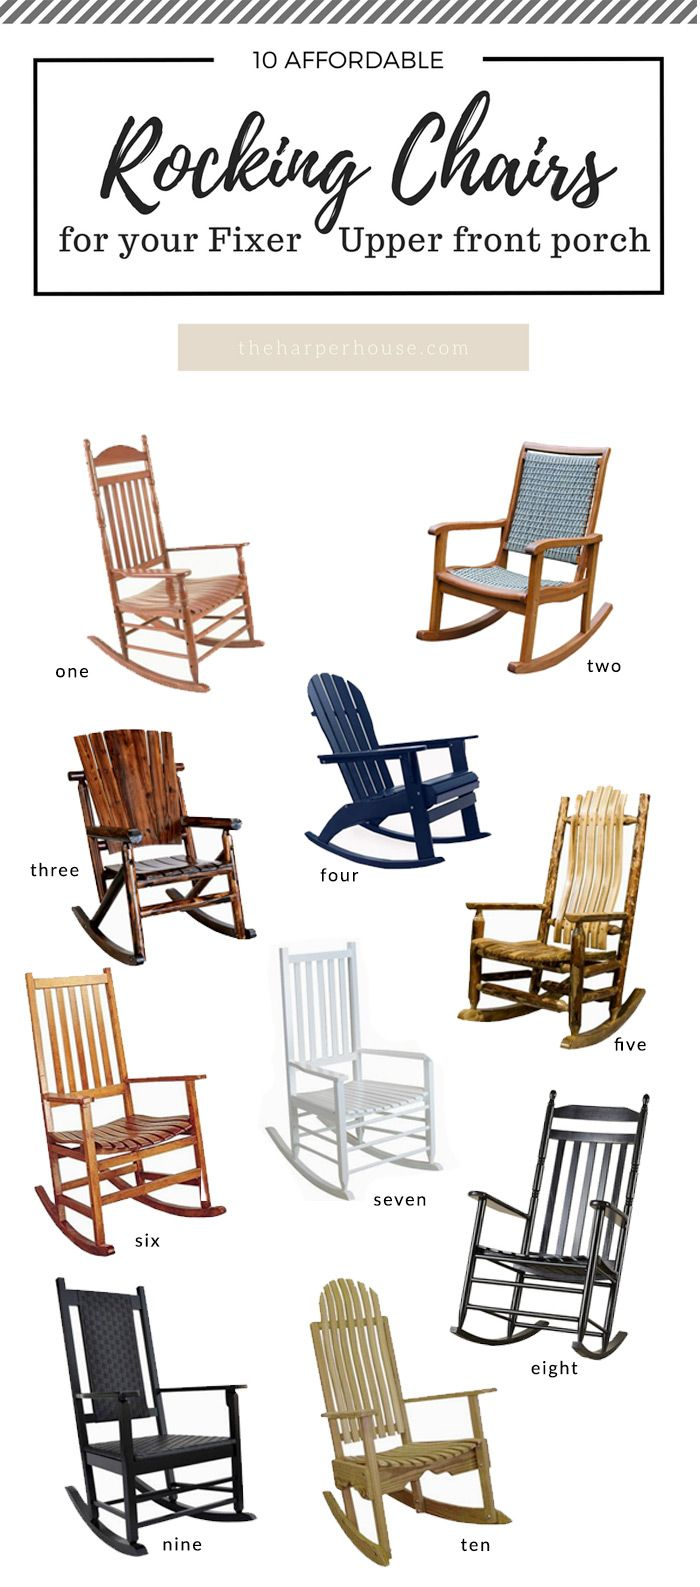 10 Awesome Porch Rocking Chairs